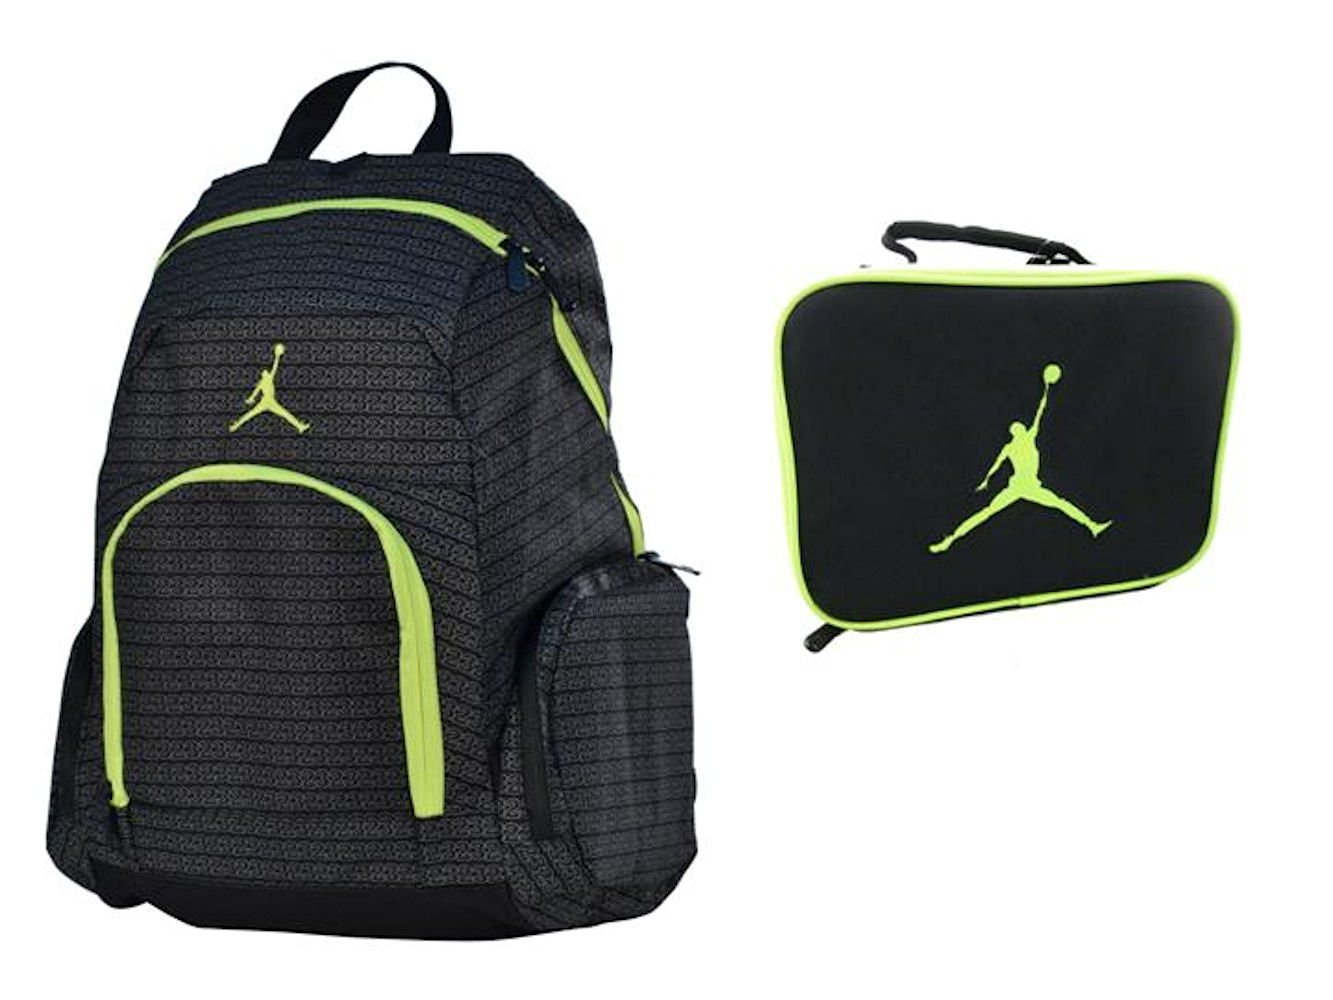 fe611155b8a Get Quotations · Nike Air Jordan Jumpman 23 Laptop Volt (Neon Green)  Backpack & Lunch Tote +